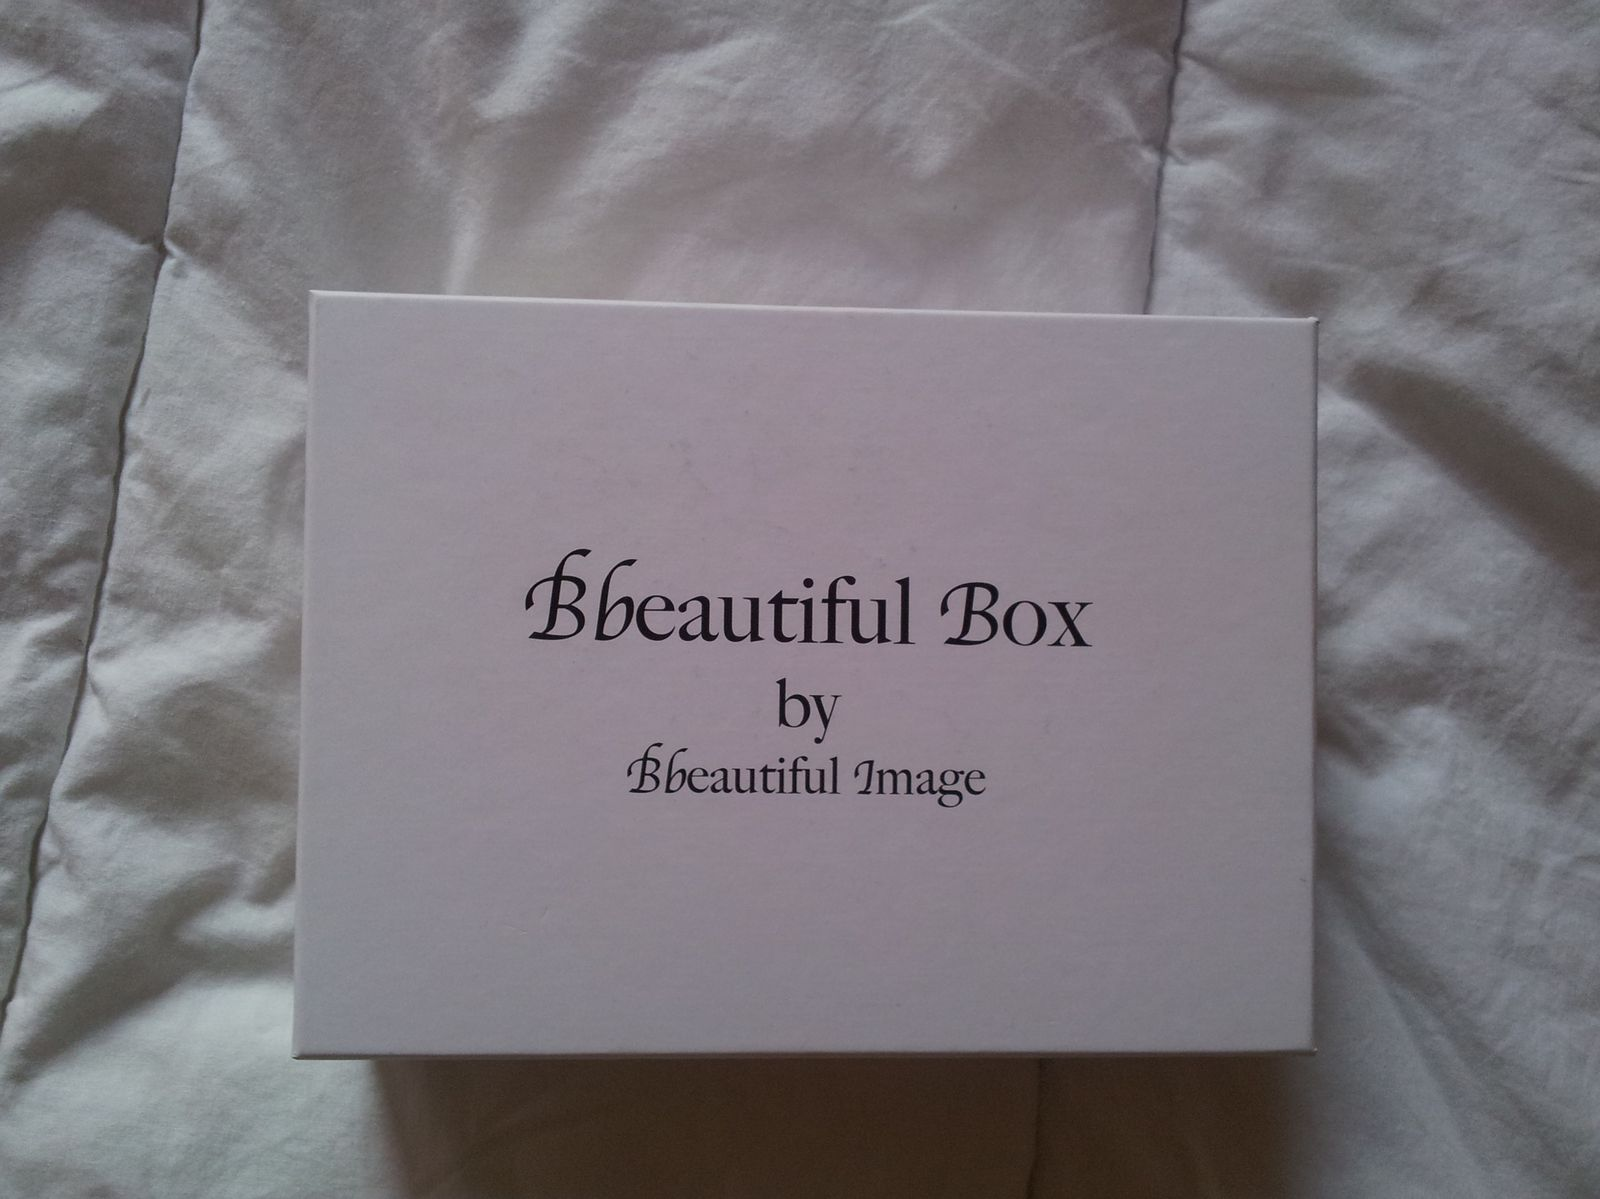 Bbeautiful Box septembre 2013